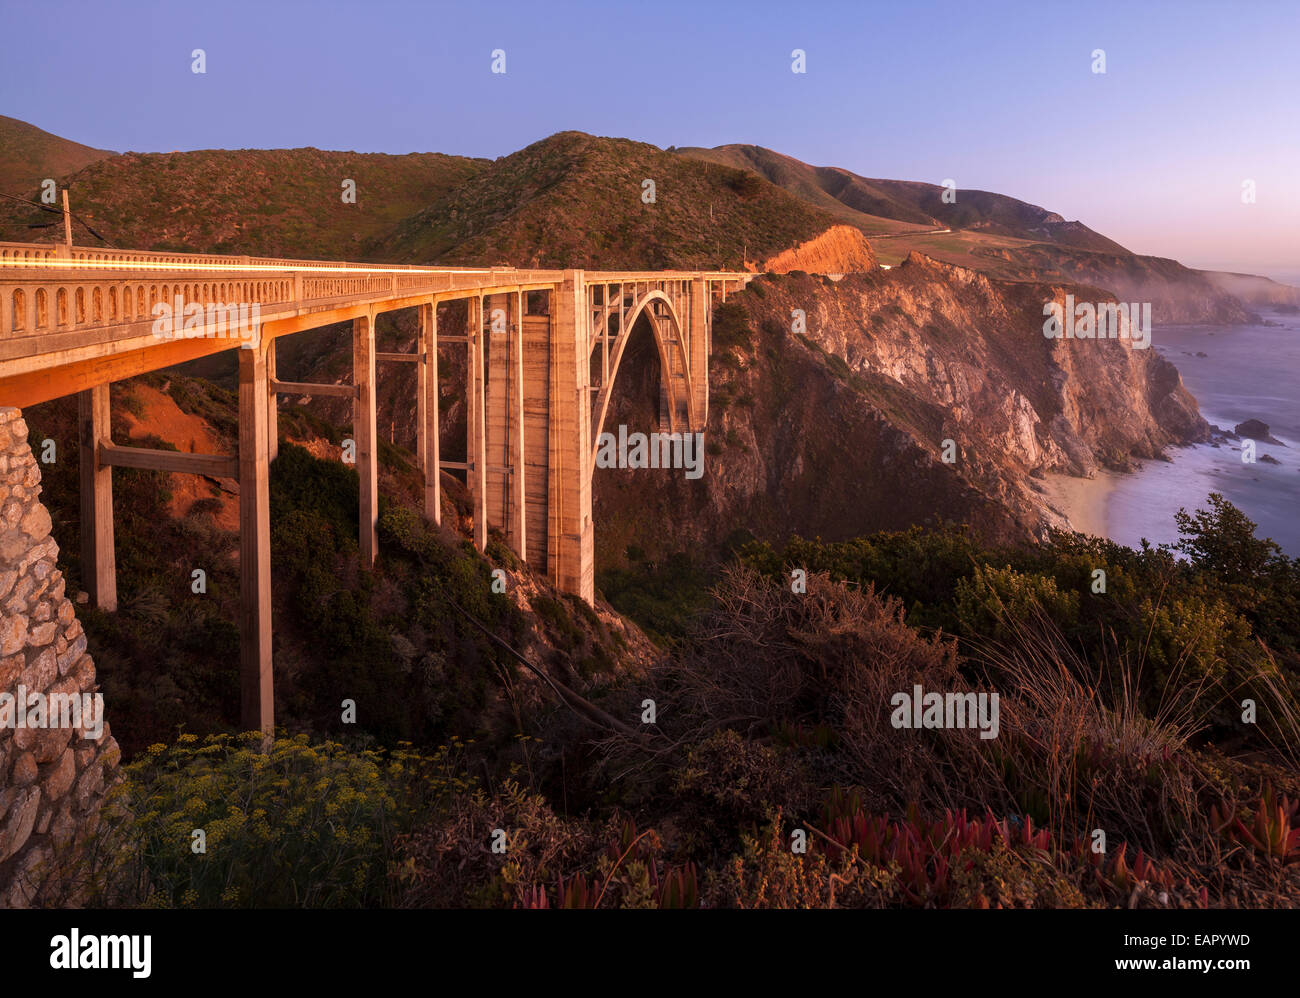 Bixby Bridge Pacific Coast Highway Big Sur California. Bixby Creek Canyon Bridge with coastline light streaks of - Stock Image